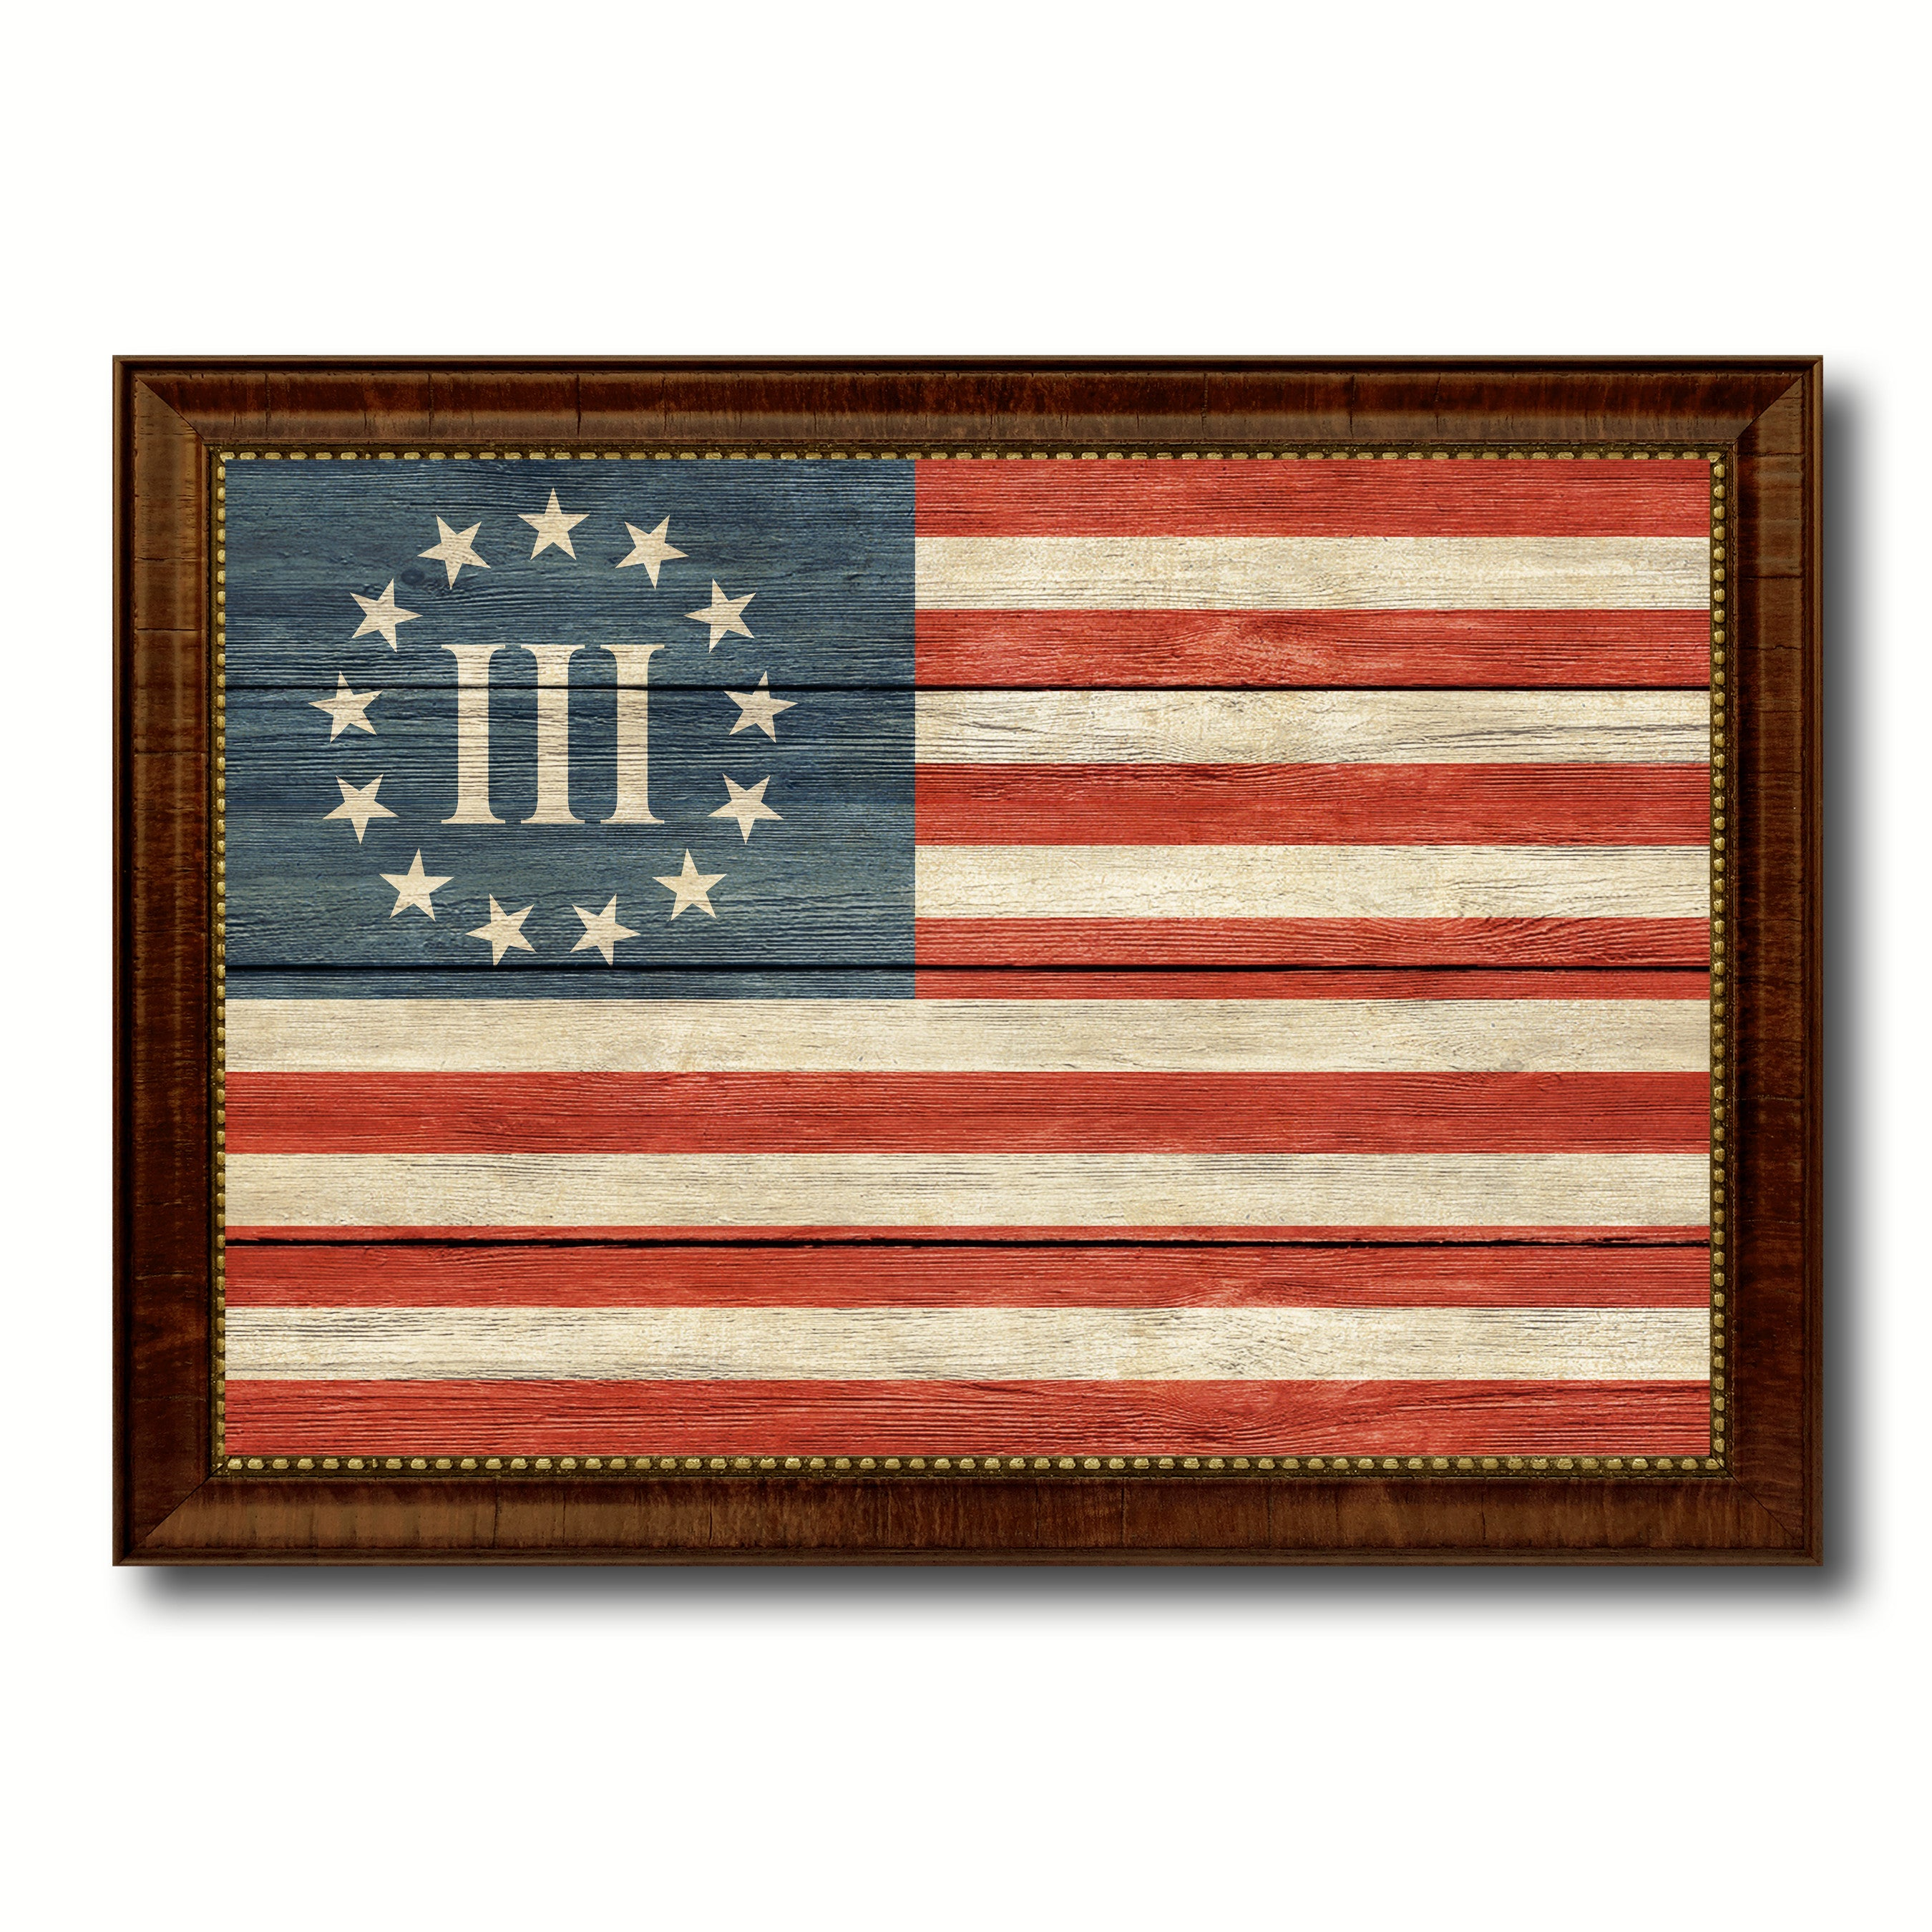 3 Percent Betsy Ross Nyberg Battle III Revolutionary War Military Flag Texture Canvas Print with Brown Picture Frame Home Decor Wall Art Gifts